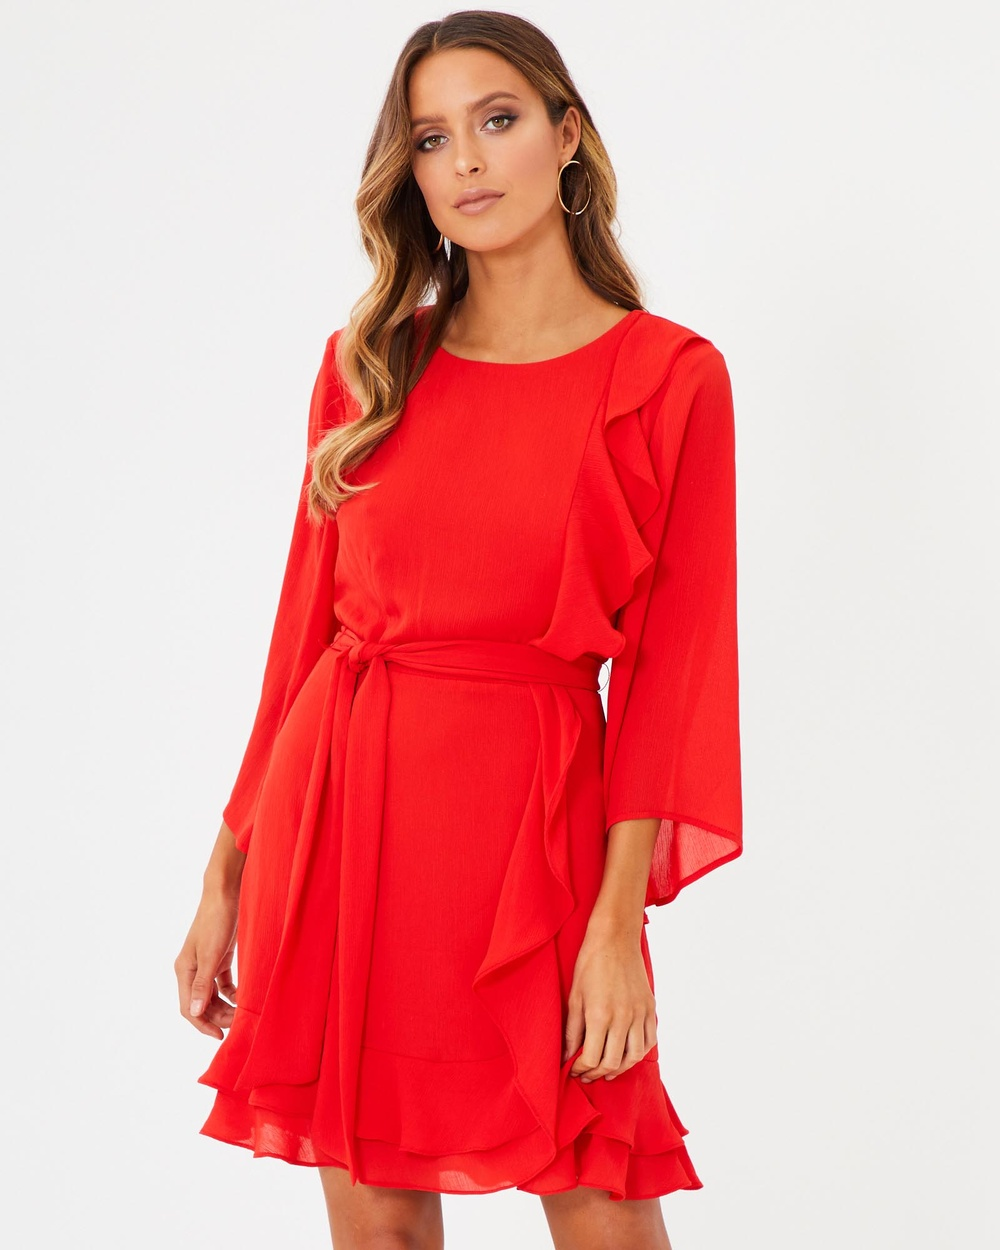 Photo of Tussah Red Alma Ruffle Mini Dress - beautiful dress from Tussah online